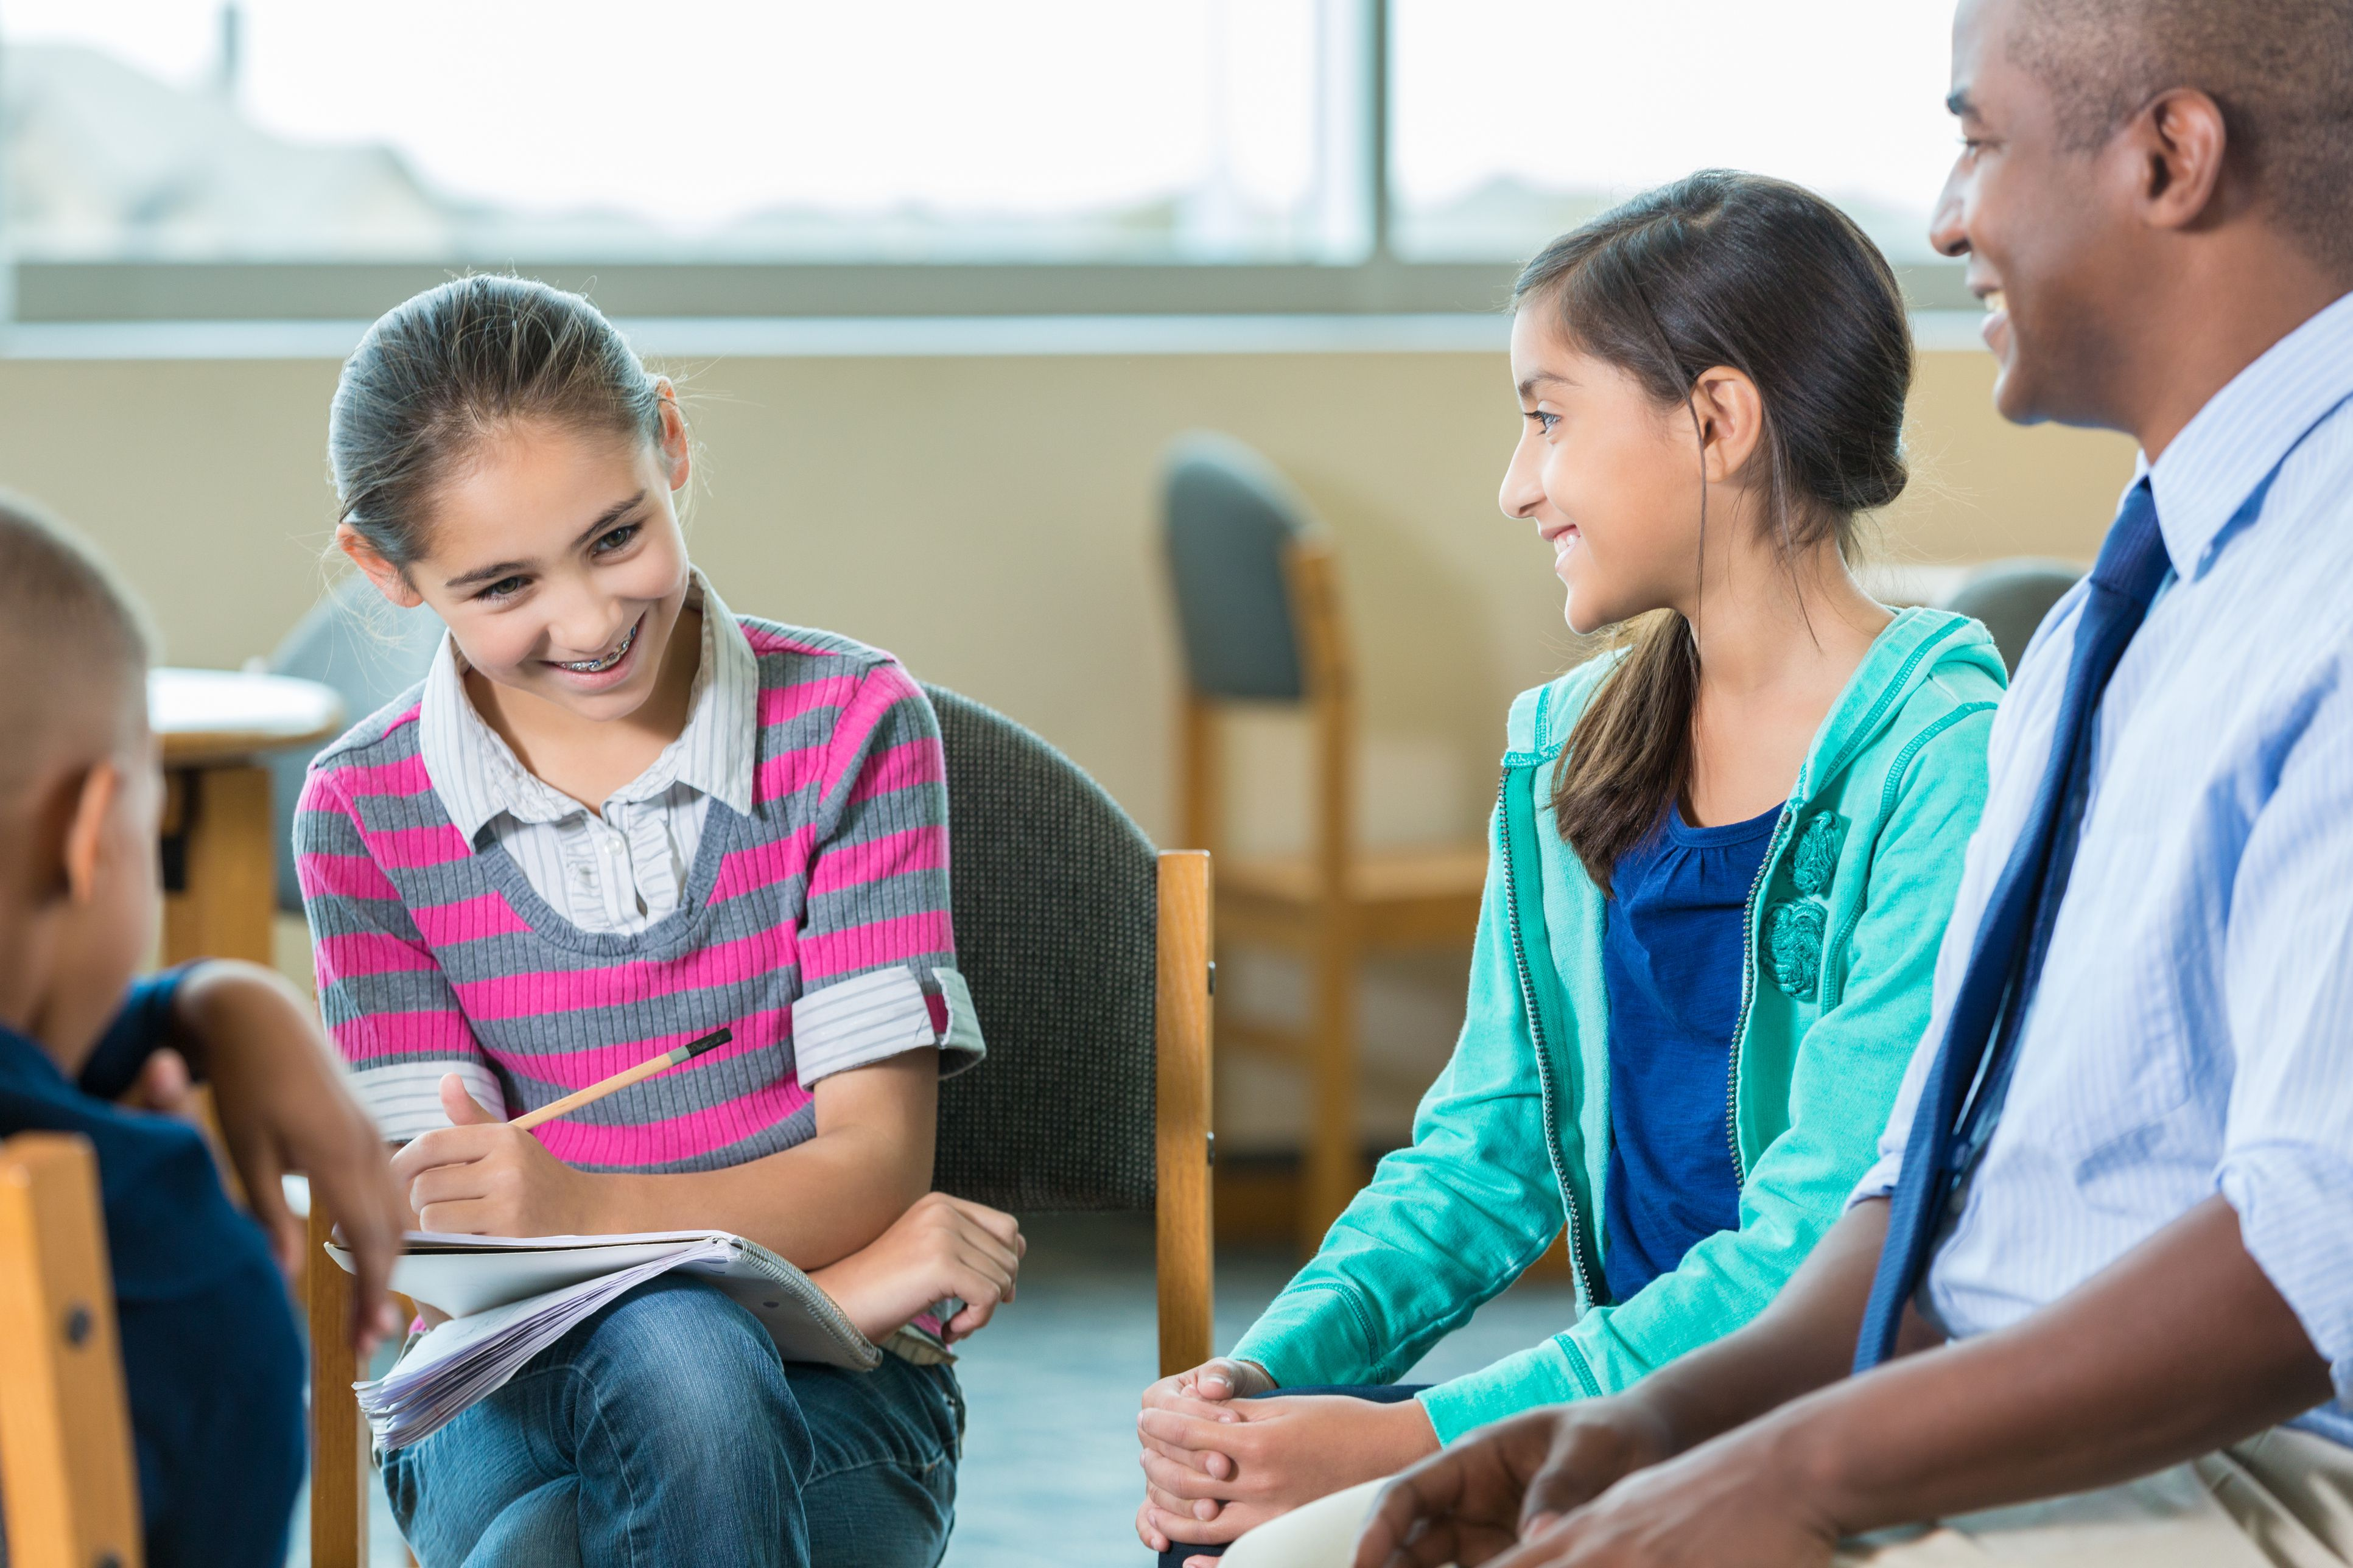 Child Psychology Jobs to Consider